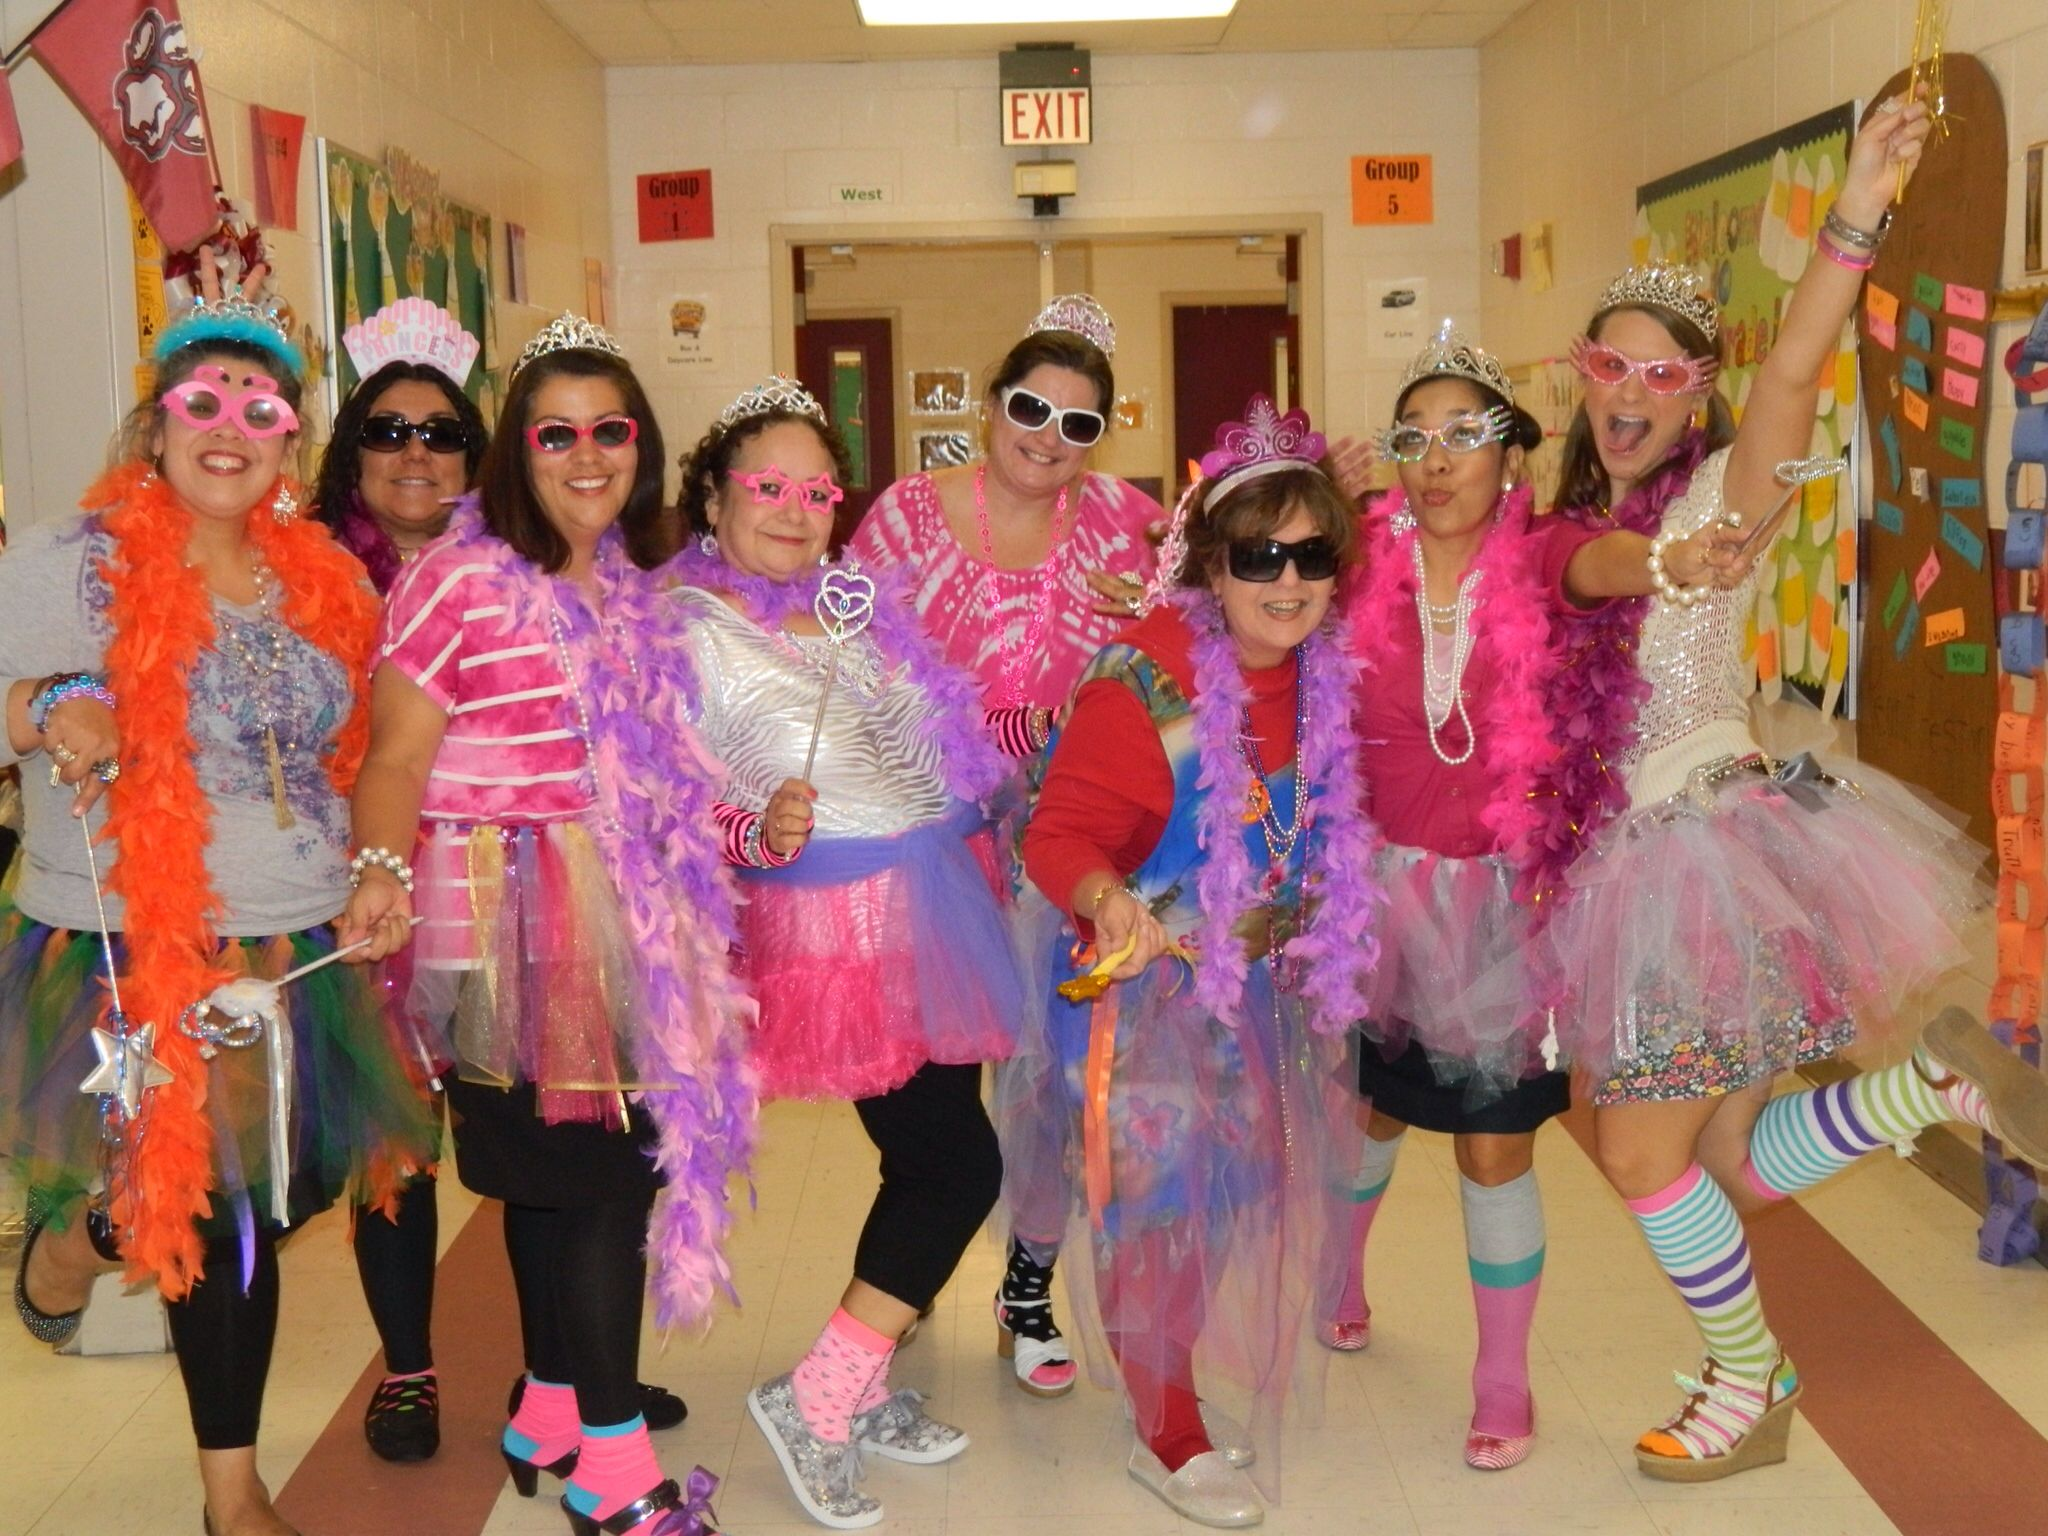 Pin By Kathy Silva On Whoooooo Halloween Fancy Nancy Costume Book Character Day Teacher Costumes